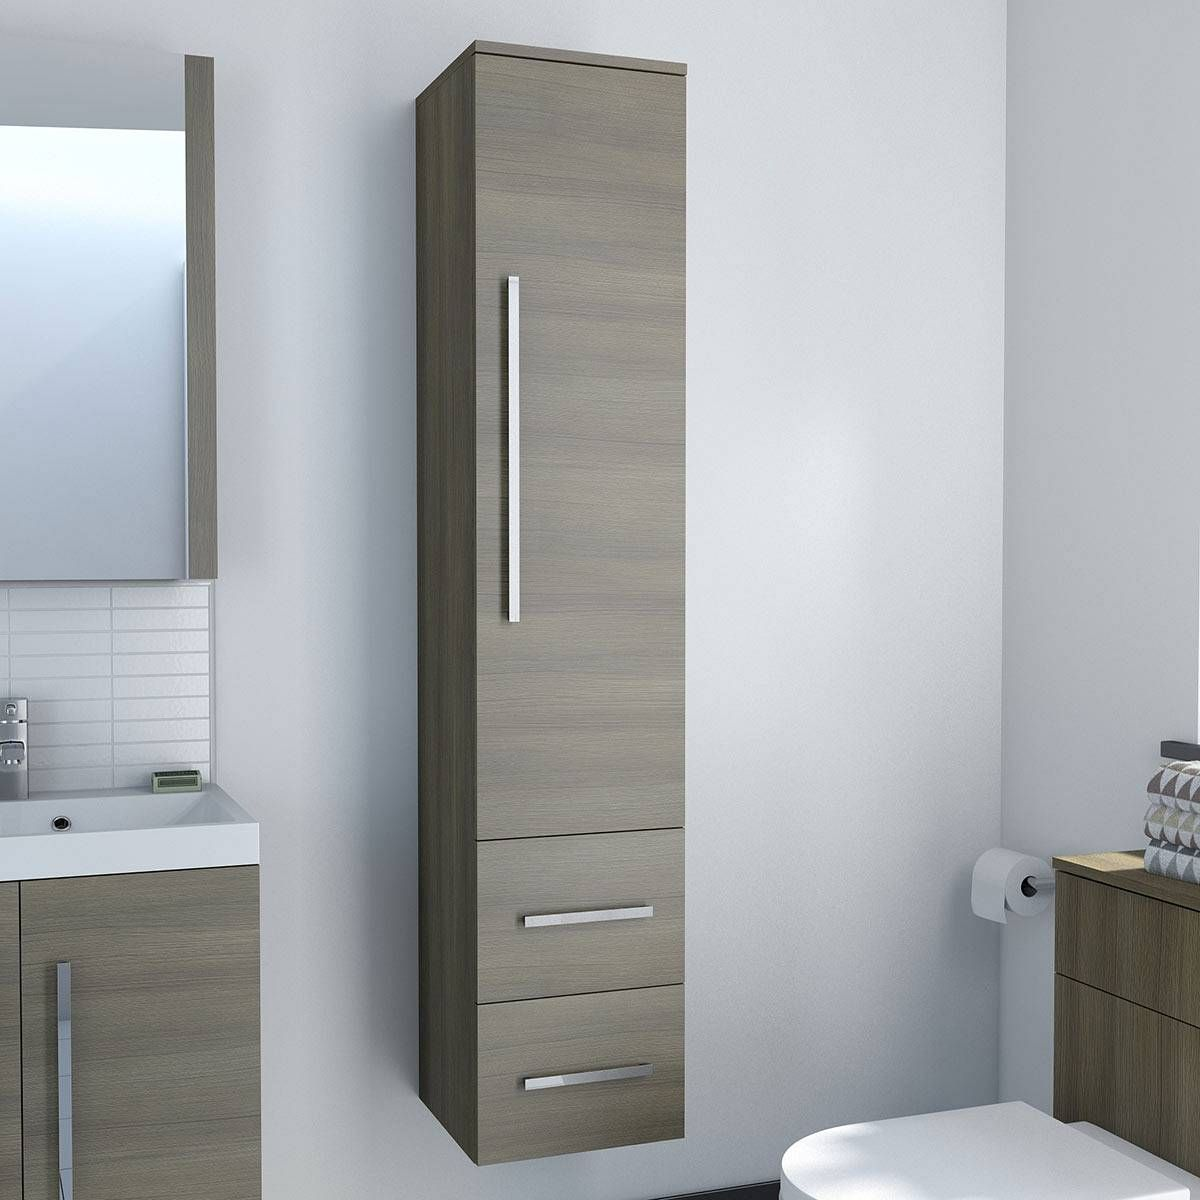 Charmant Narrow Tall Bathroom Cabinets